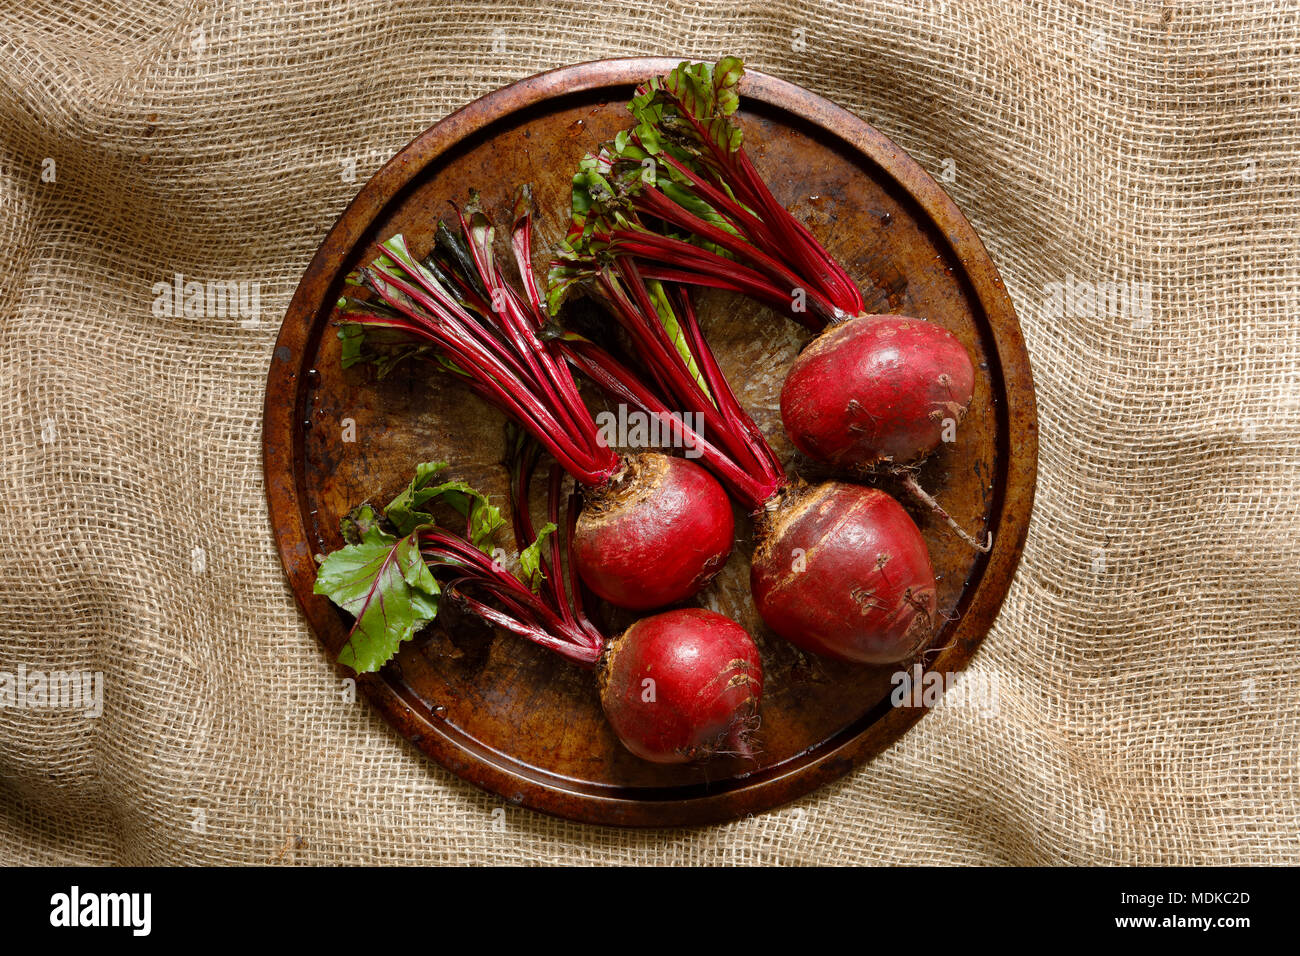 Fresh beetroots on metal tray on hessian sack cloth - Stock Image